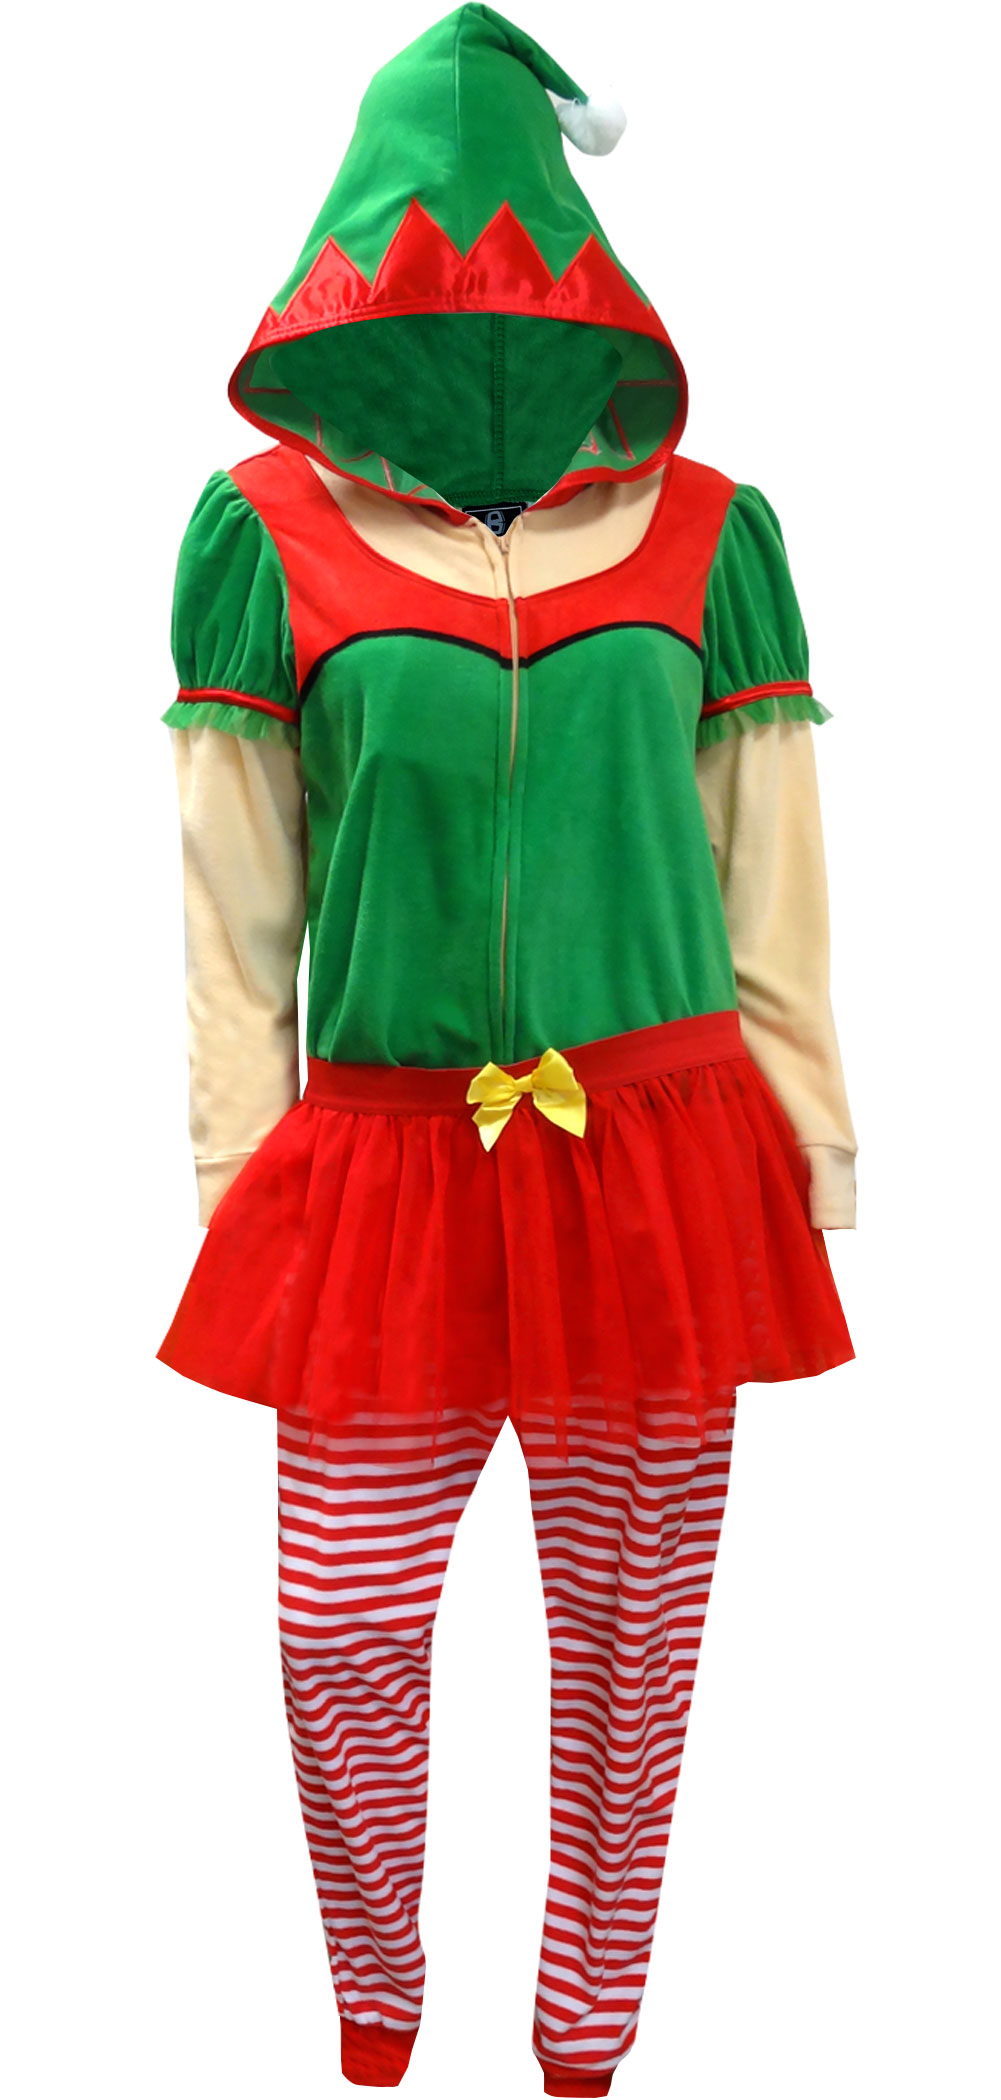 Image of Christmas Elf Onesie Hooded Skirted Women's Union Suit Pajama for women